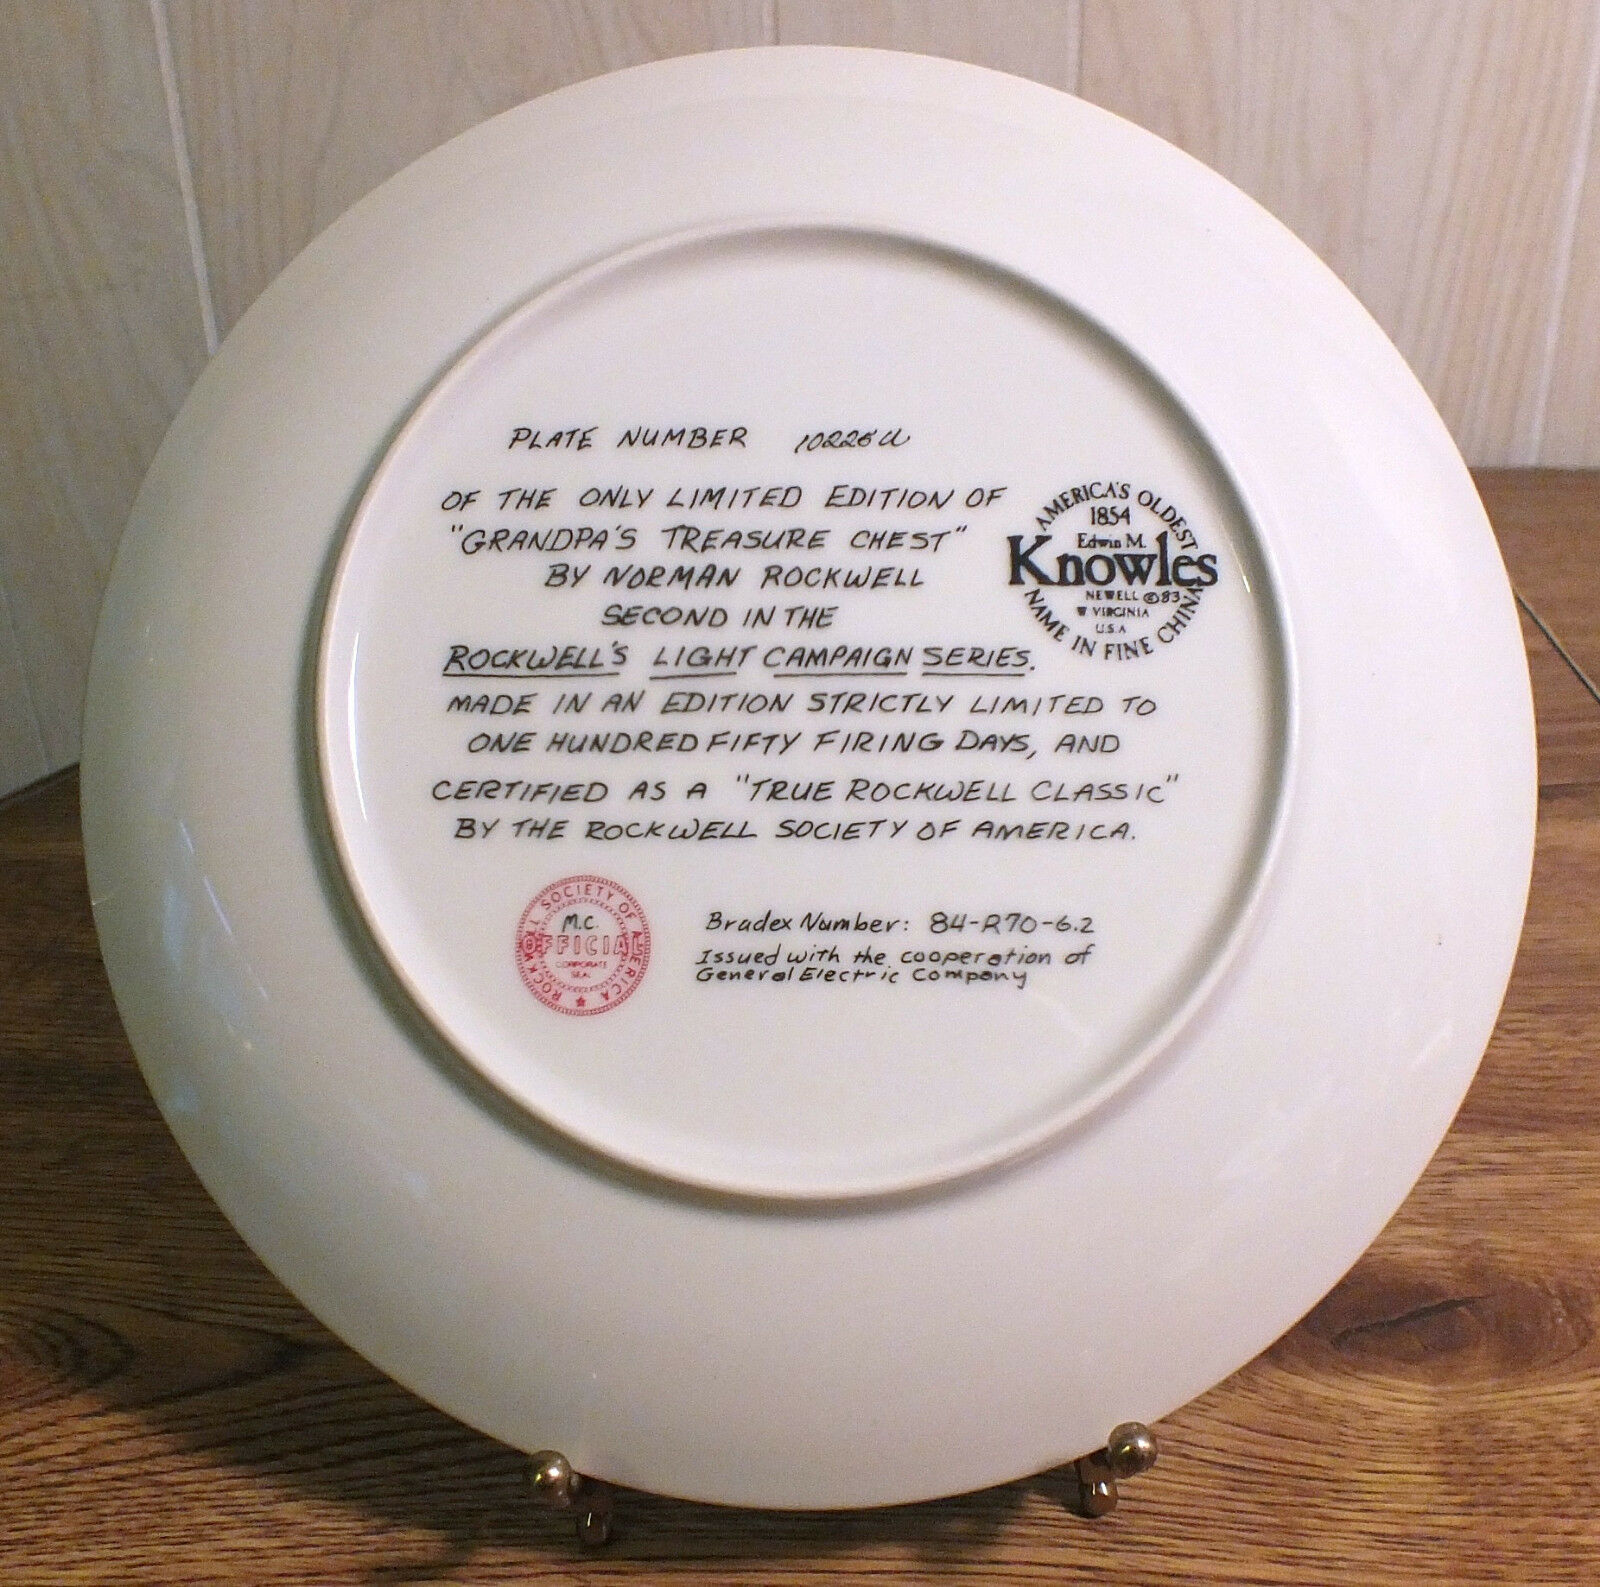 Limited Edition Collector Plate Grandpa's Treasure Chest-Norman Rockwell Knowles